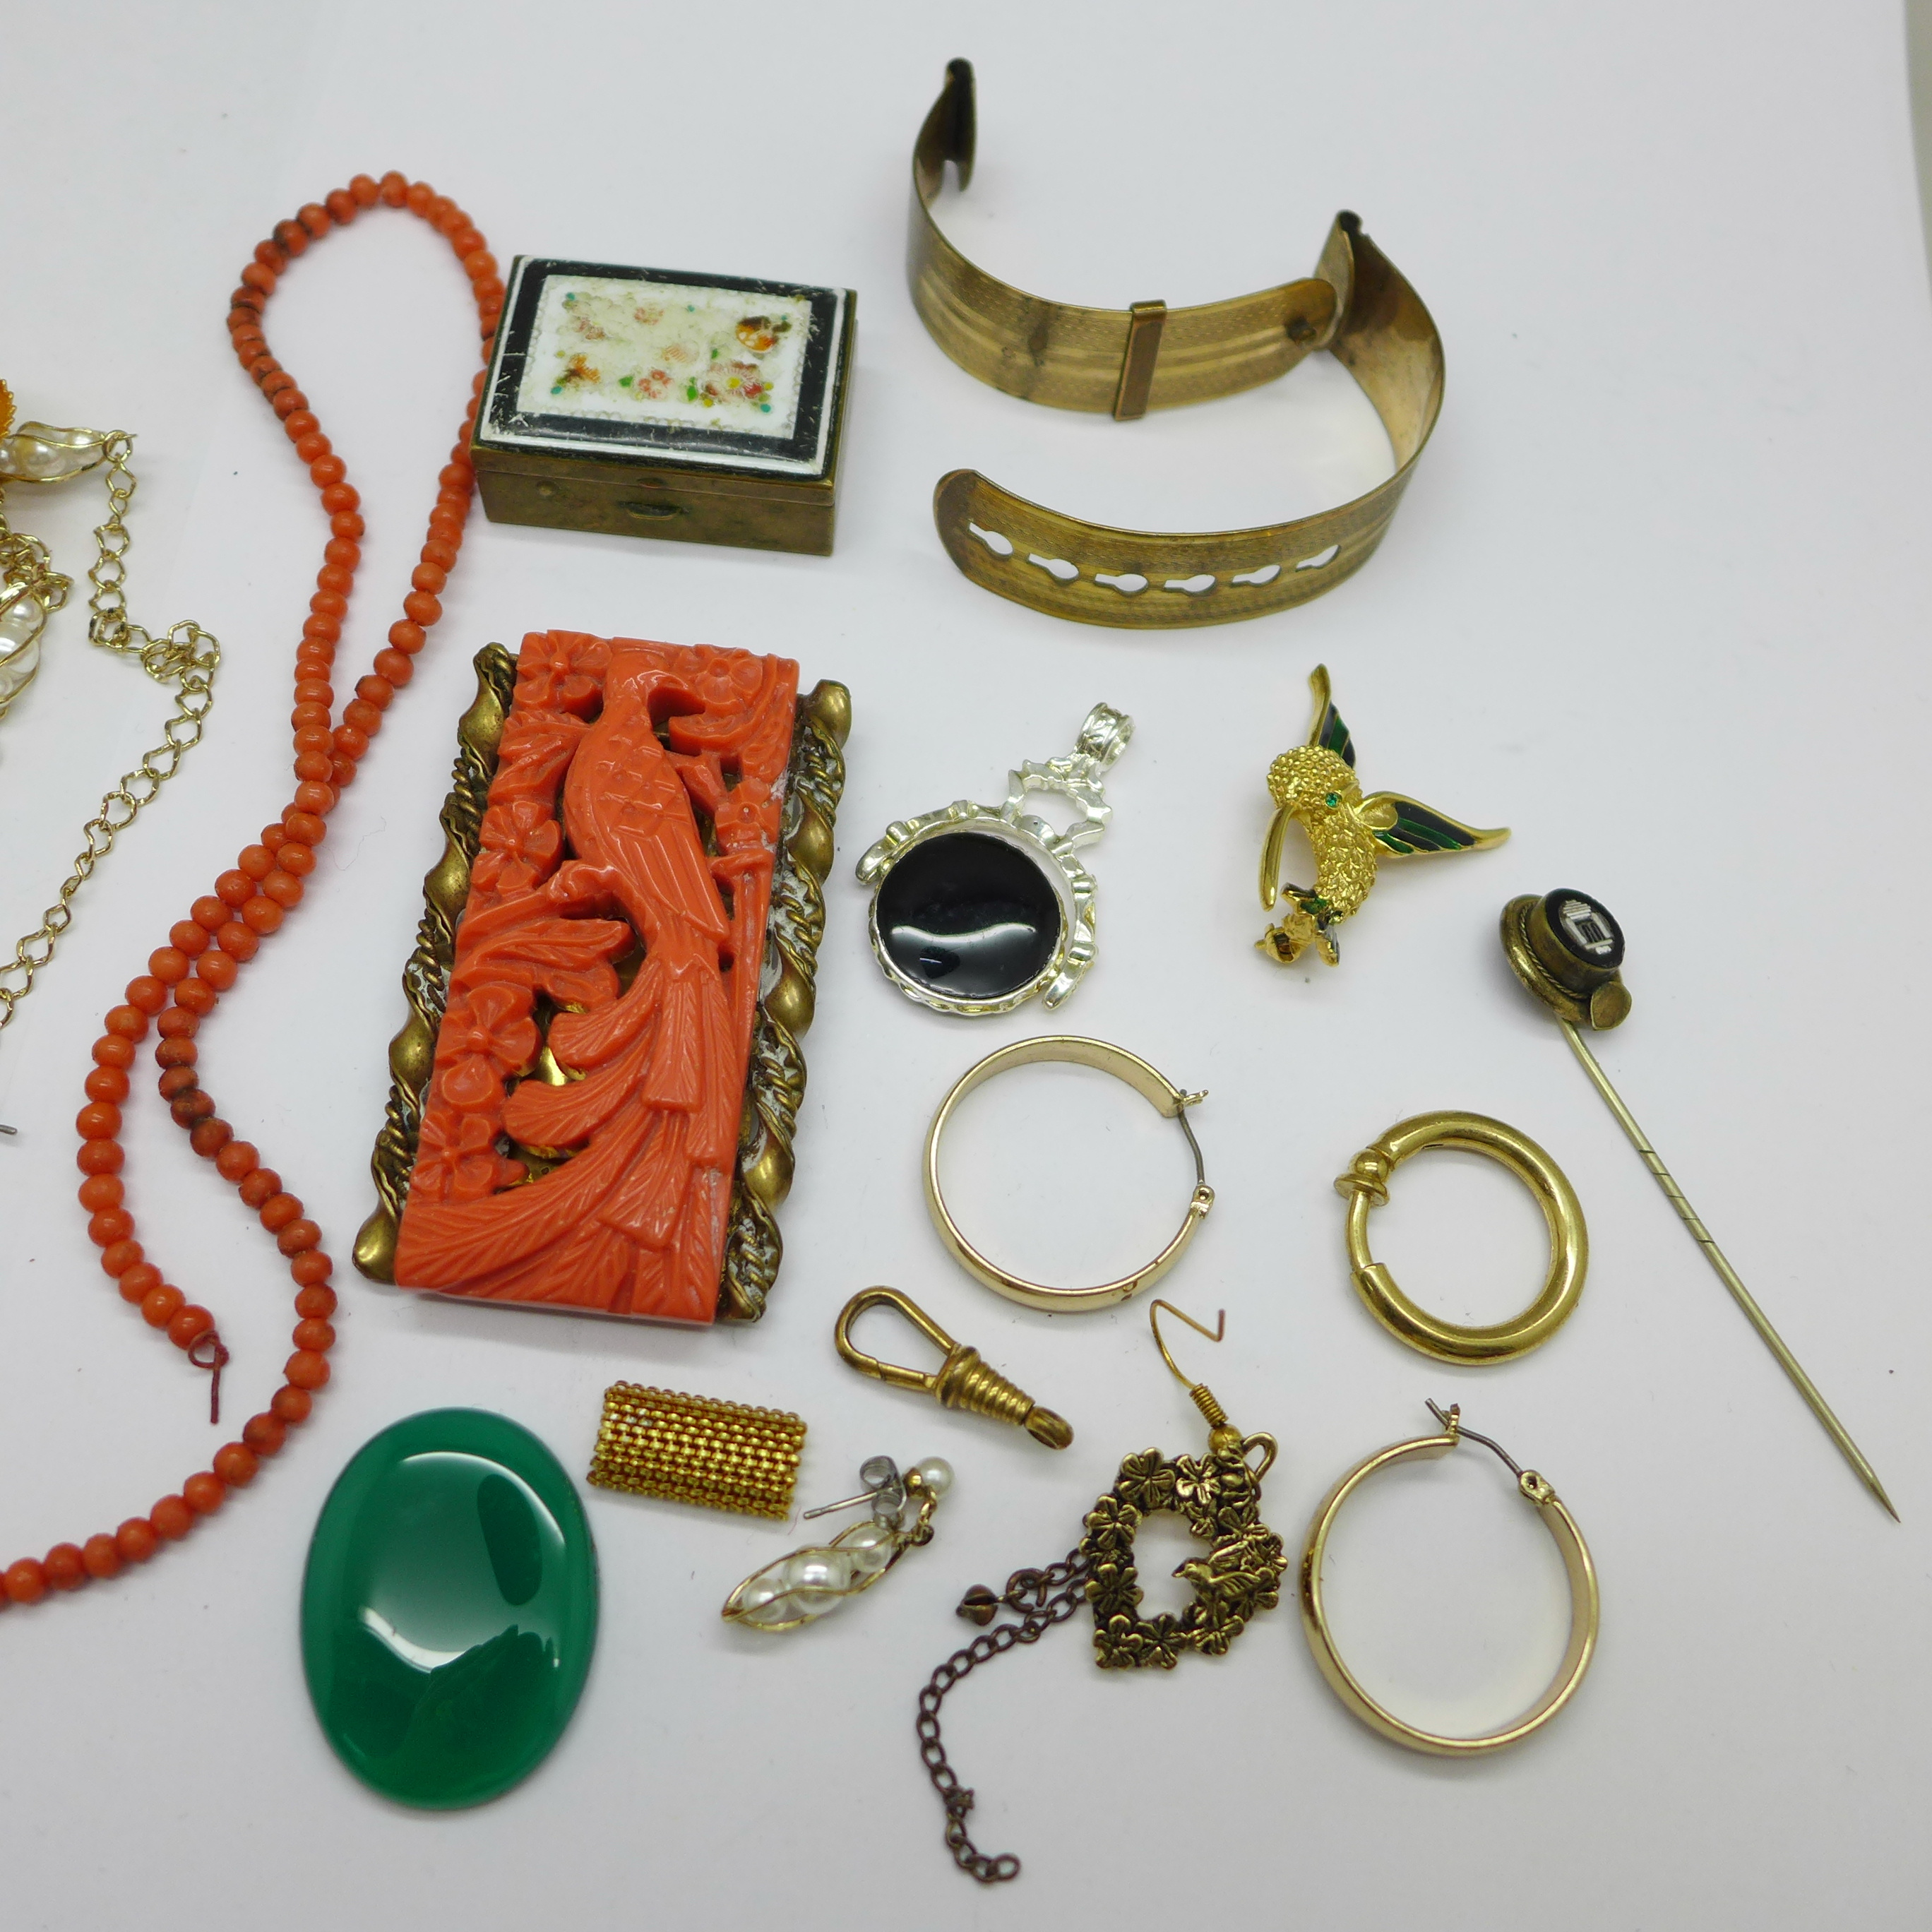 Costume jewellery, some a/f - Image 3 of 3